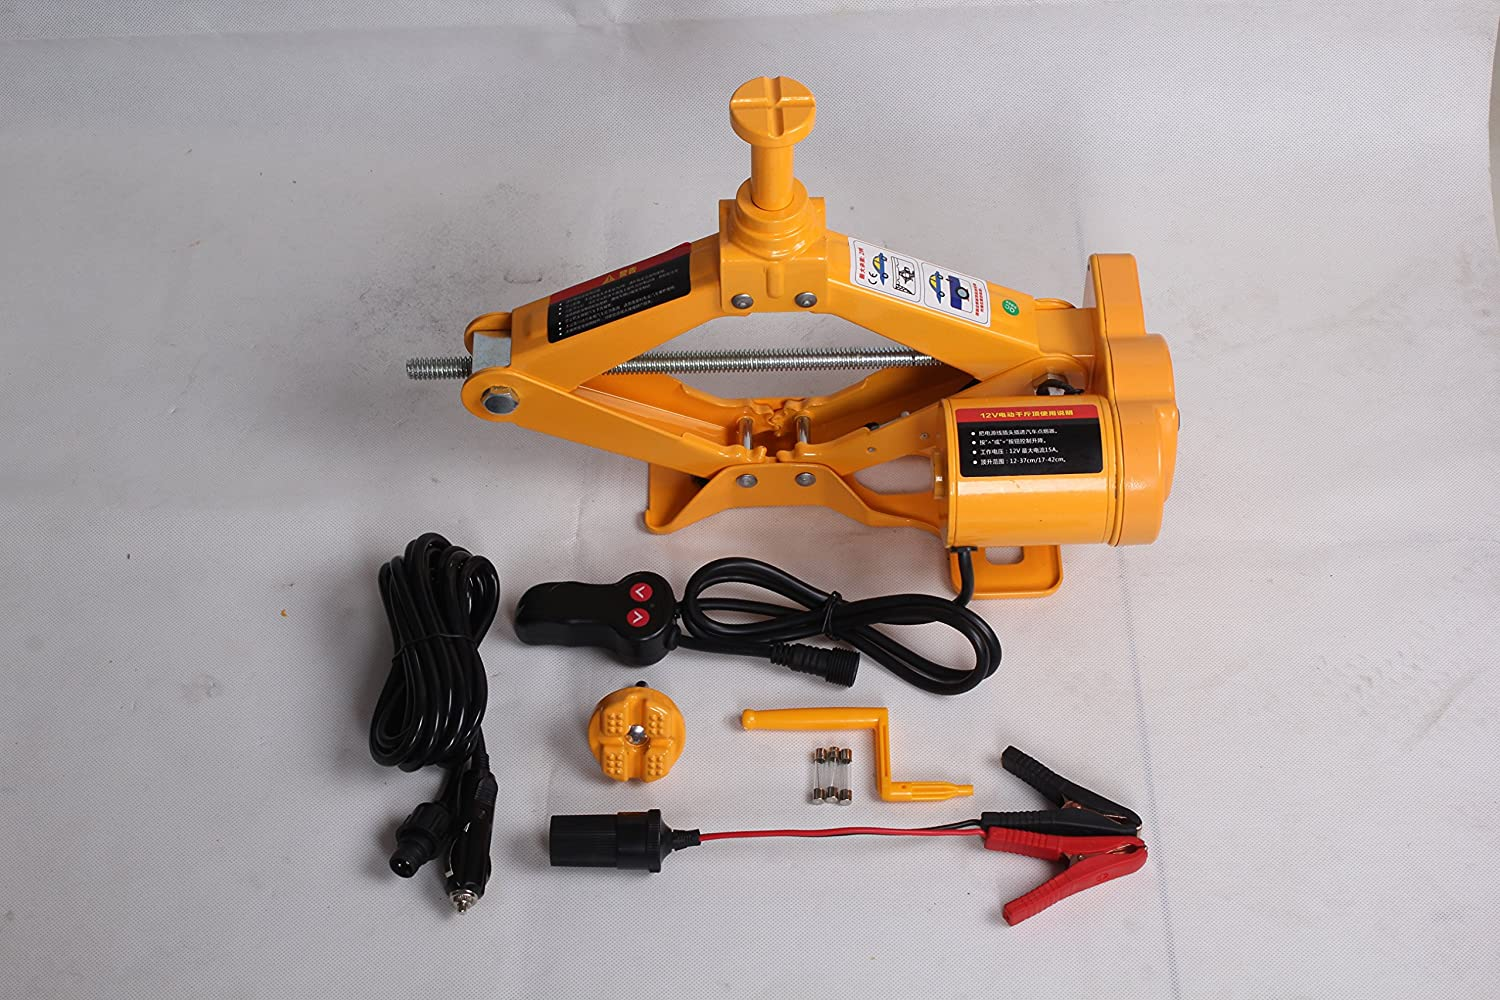 12 V 2 Tonne Scissor Jack Car Lift Electric Car Jack Scissor Jack ZS ZAISHANG Lifting Range 12.5-42 cm